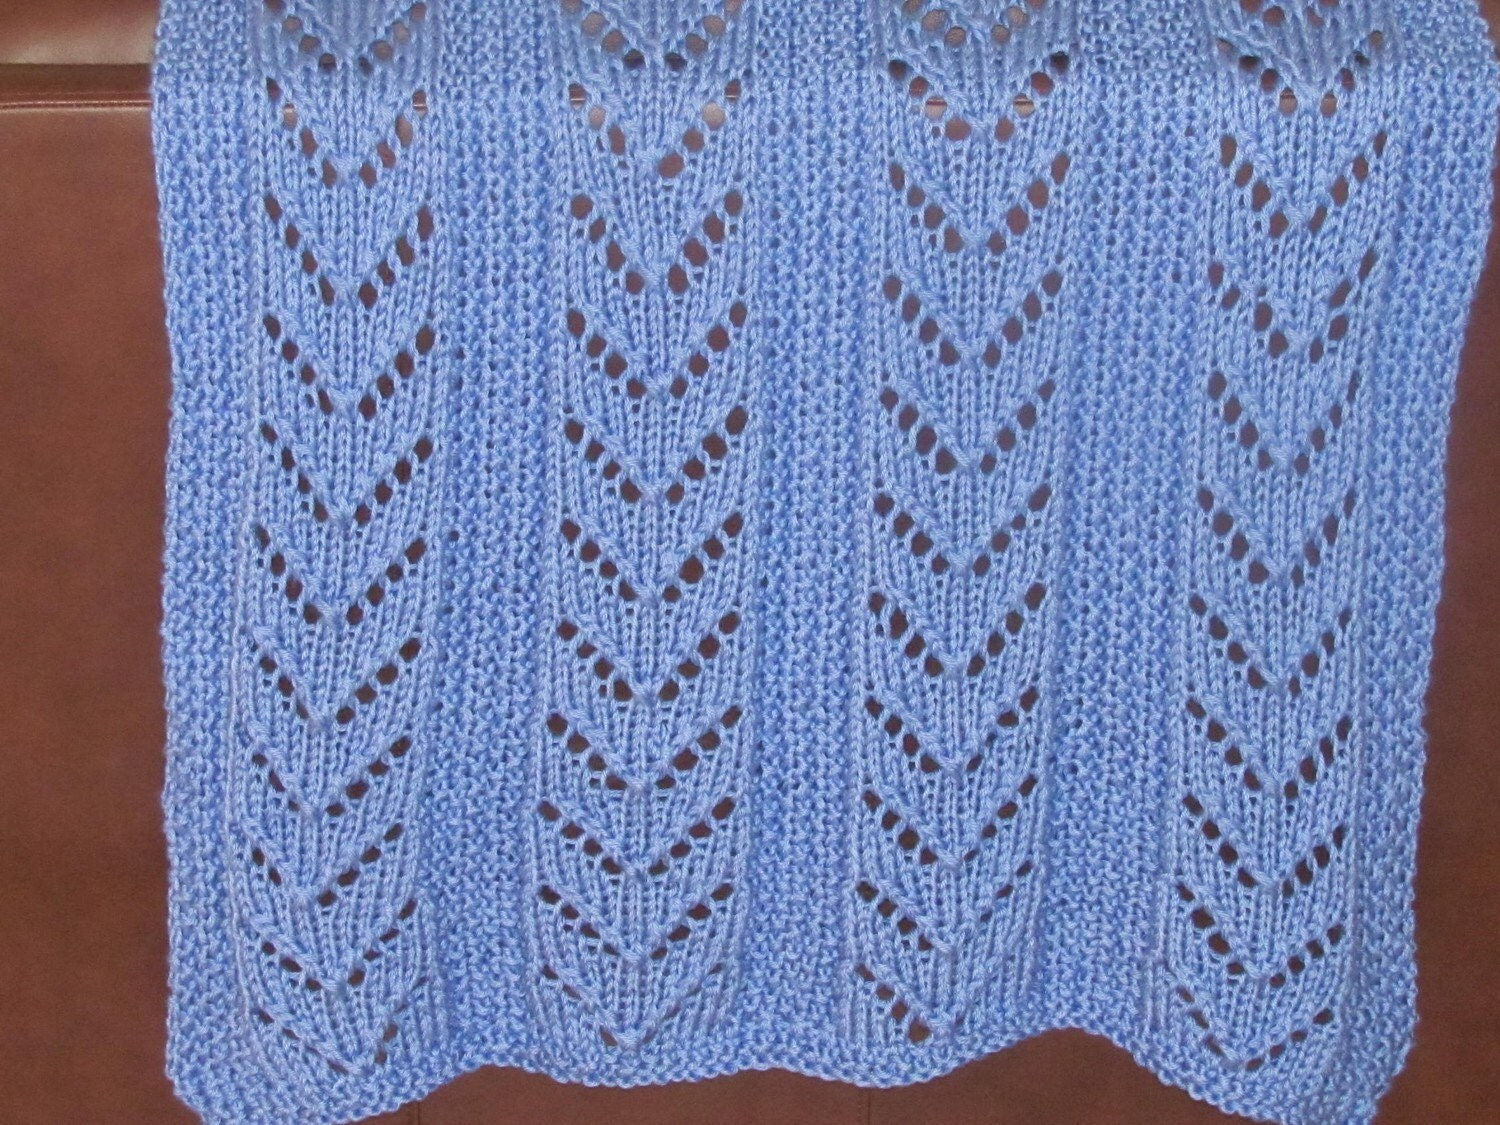 Free Knitting Patterns For Lap Blankets : AFGHAN KNIT special needs lap blanket Hand knitted in